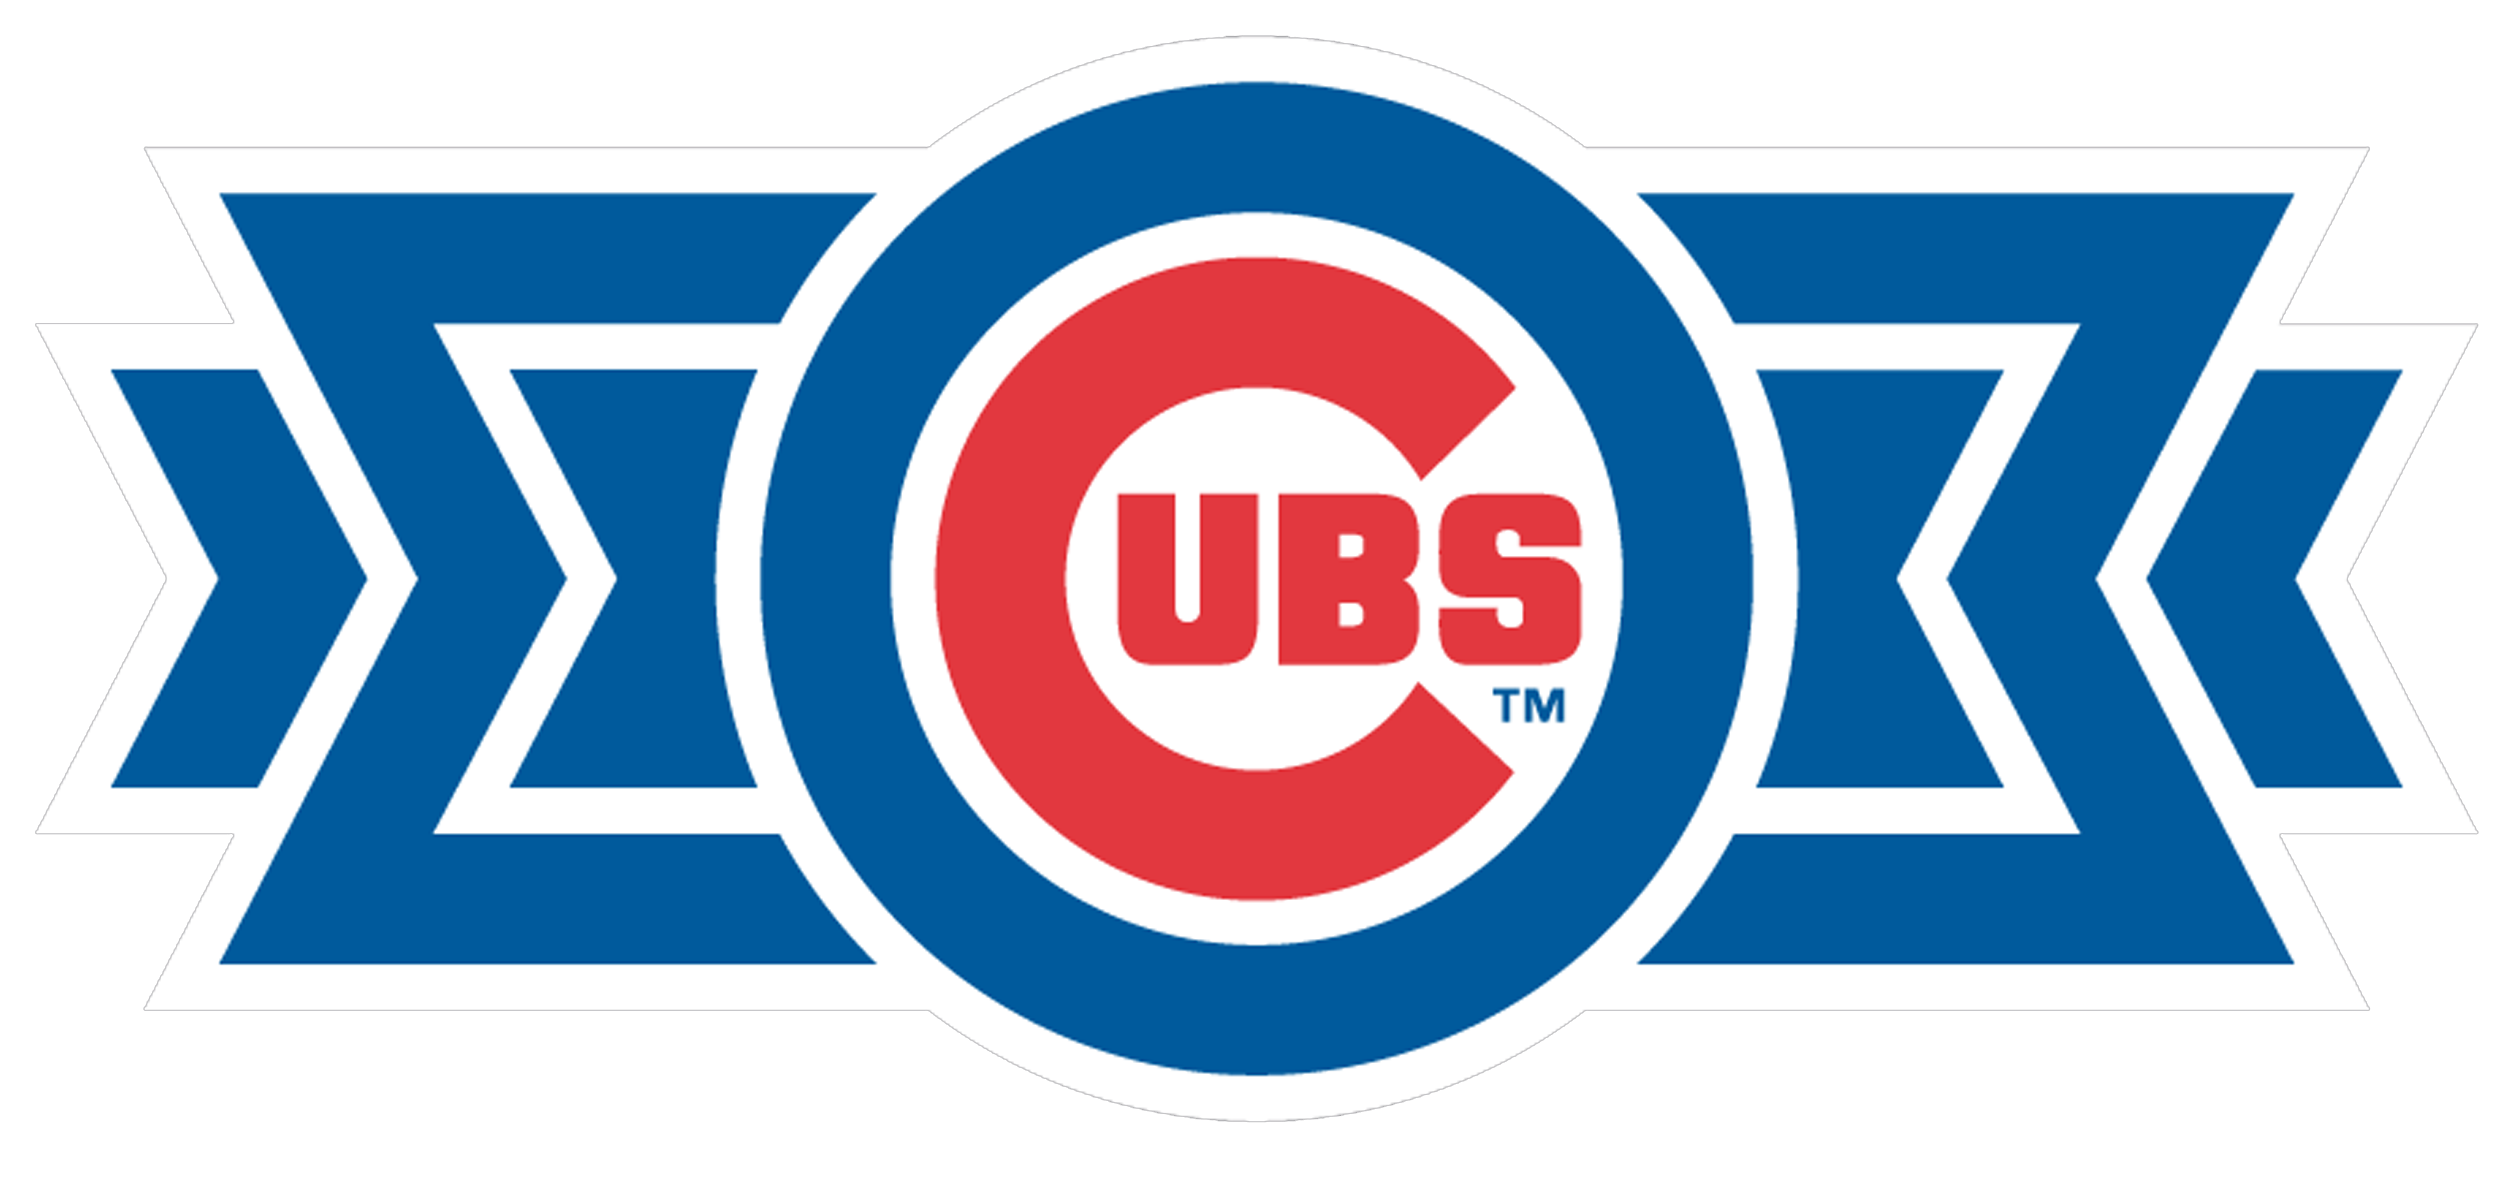 picture regarding Printable Chicago Cubs Logo named Sloan Park Spring Working out Chicago Cubs